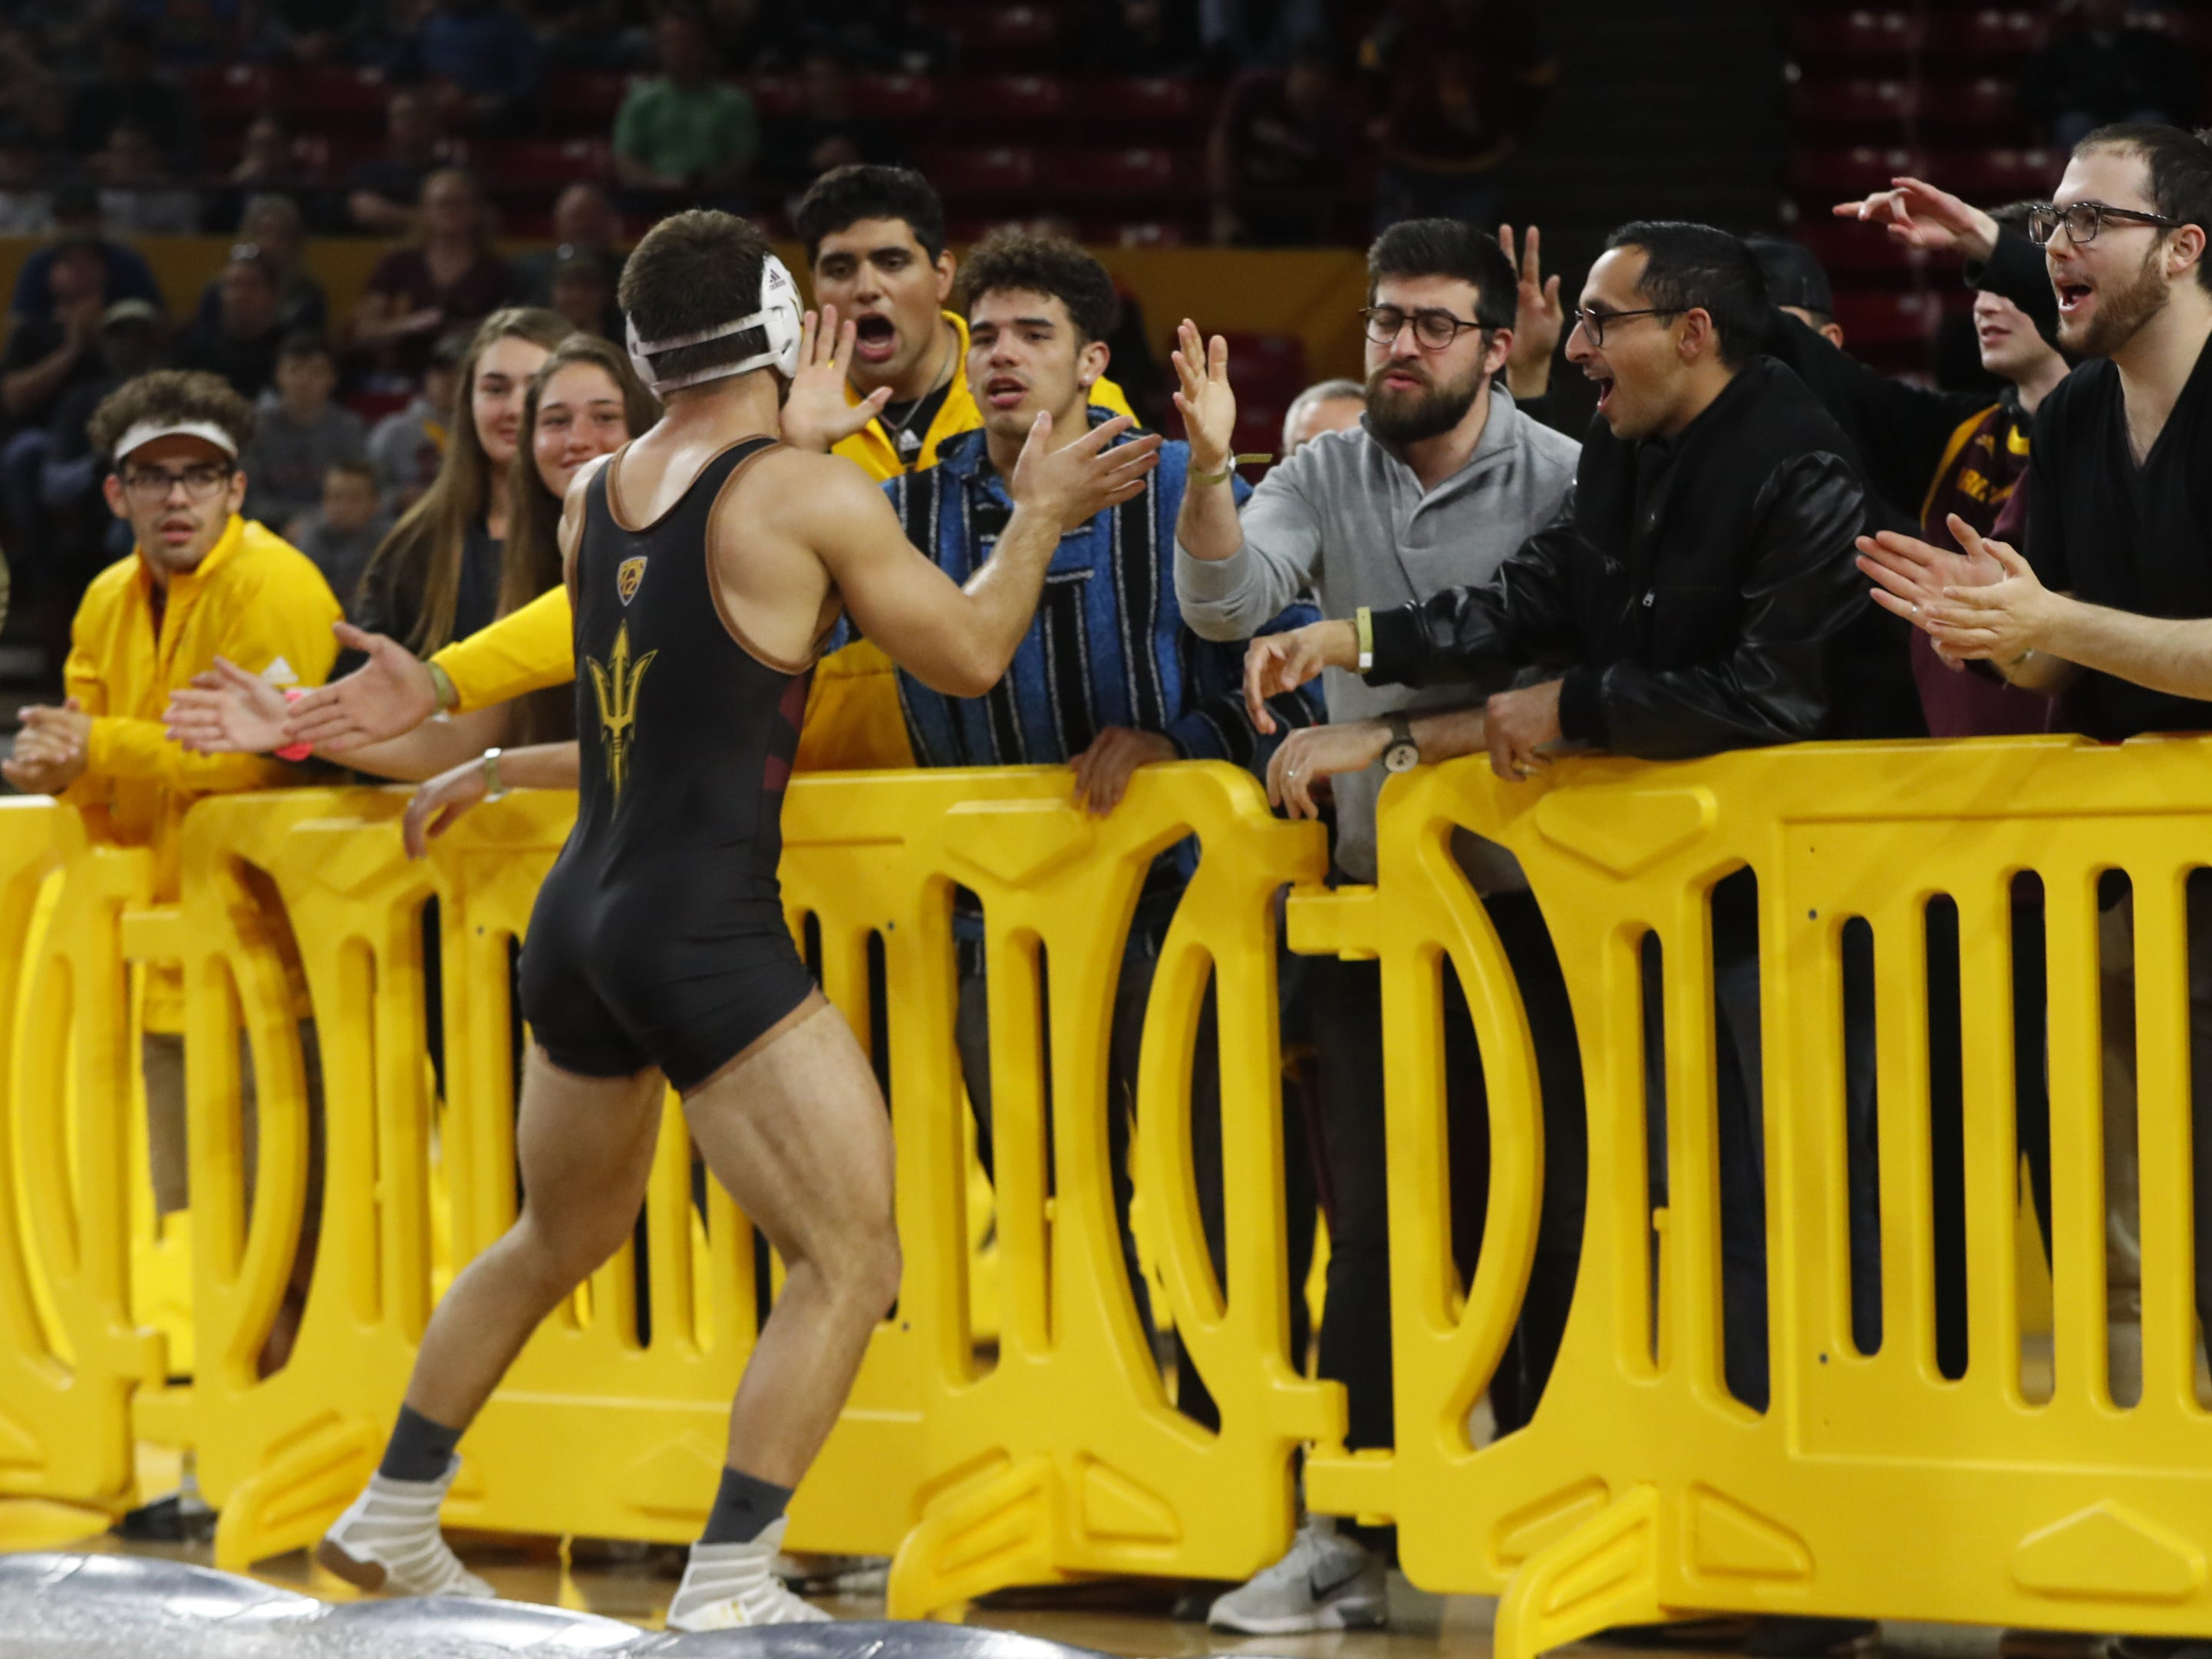 ASU's Josh Shields (in black) celebrates with fans after beating Michigan's Logan Massa (in yellow and blue) during a 165 lbs match at Wells Fargo Arena in Tempe, Ariz. on January 5, 2019.